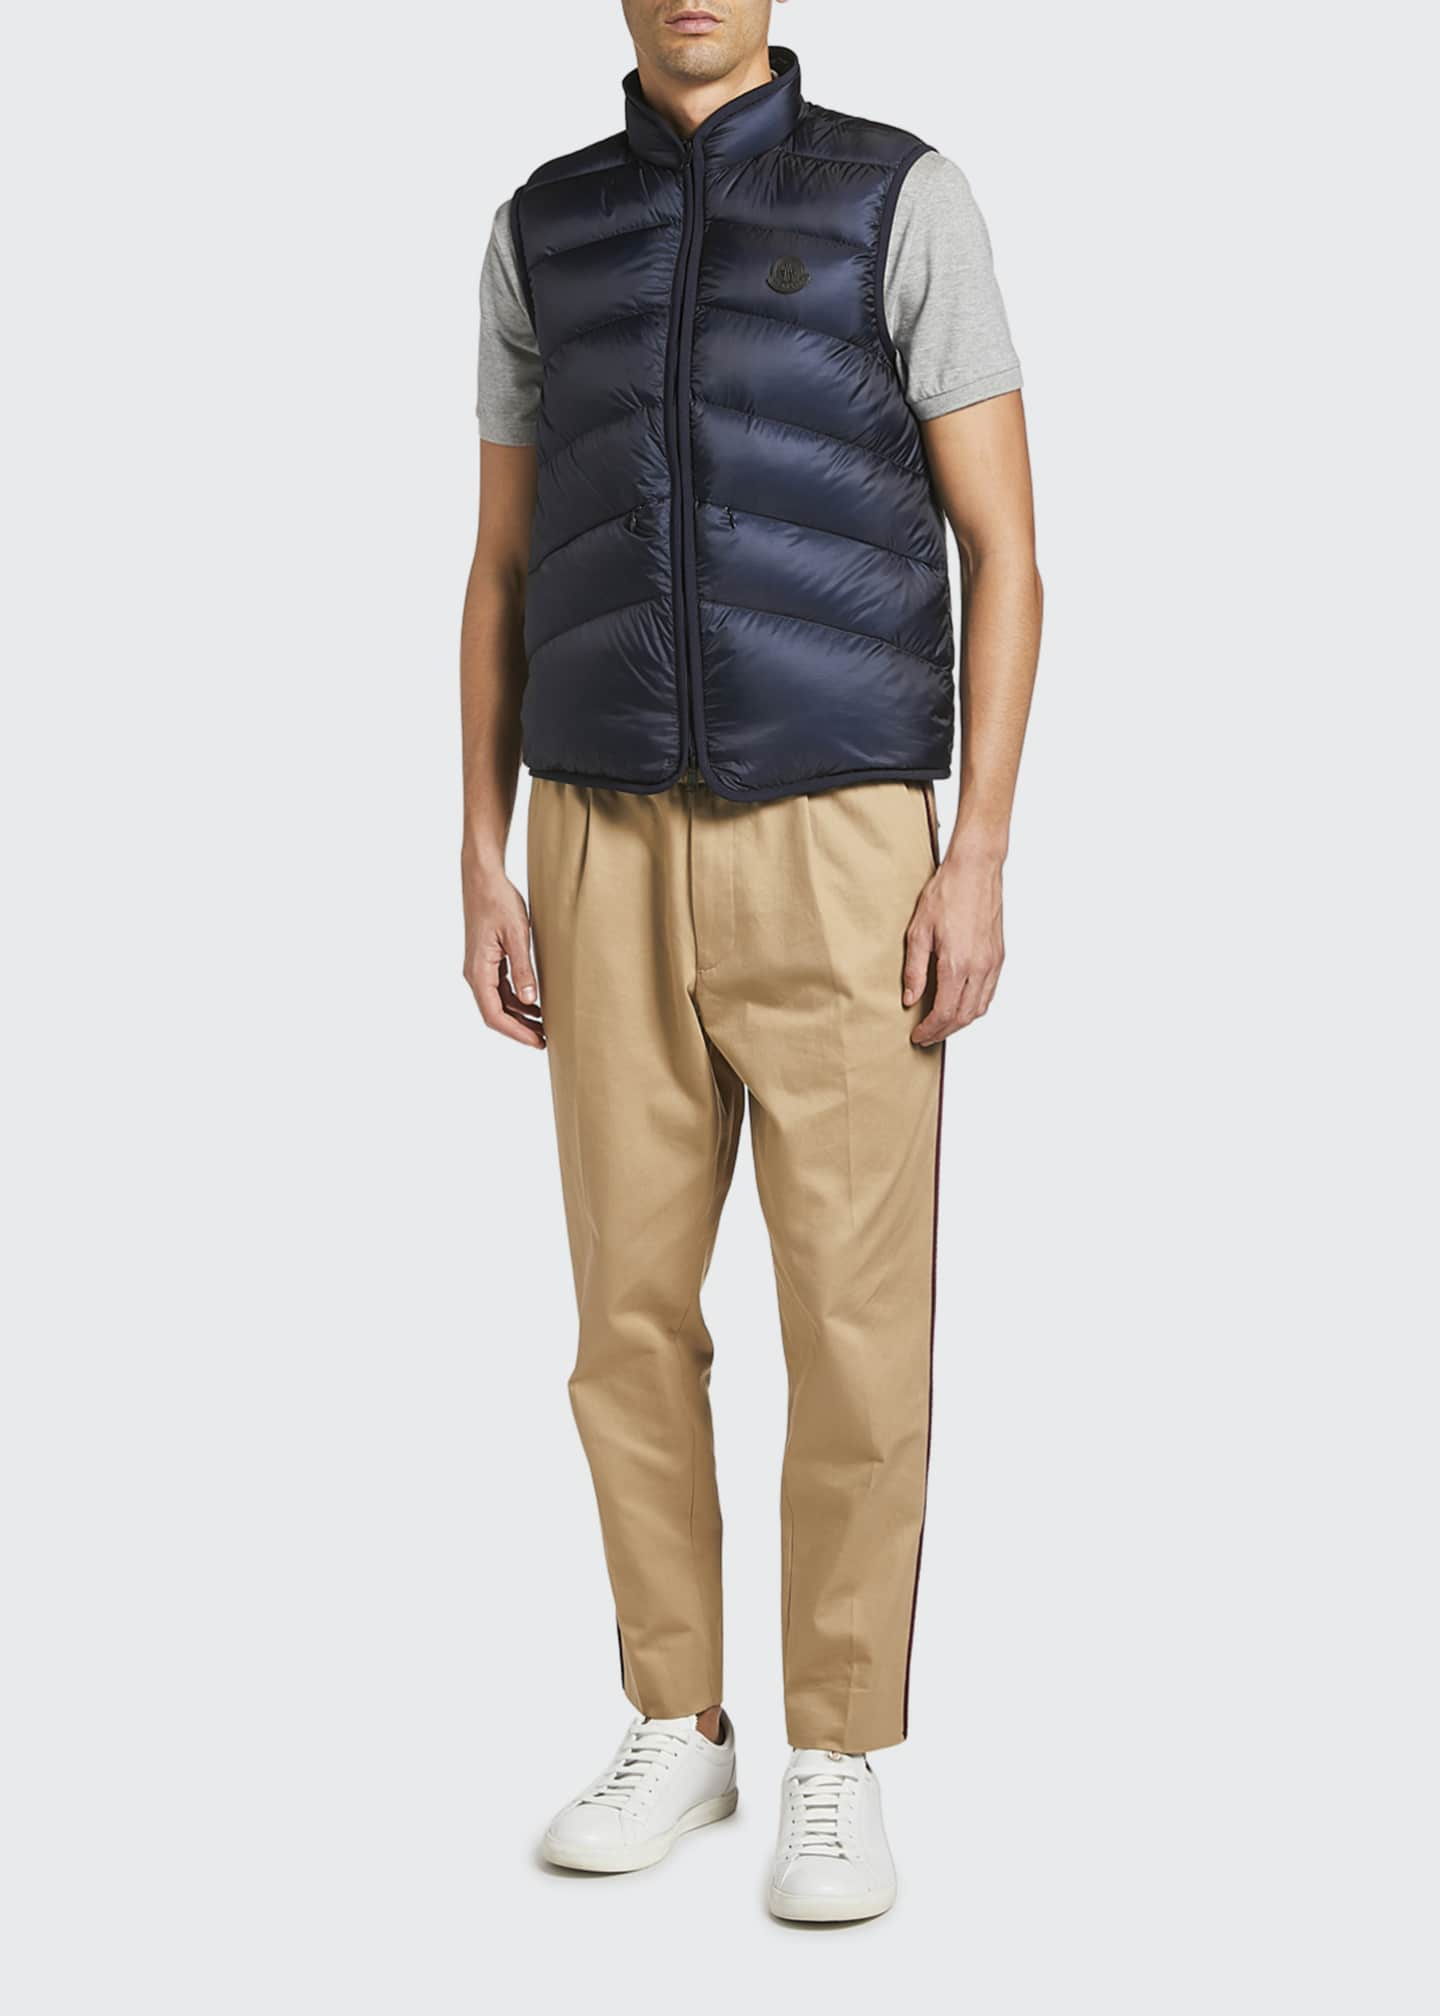 Men's Bourceau Puffer Vest